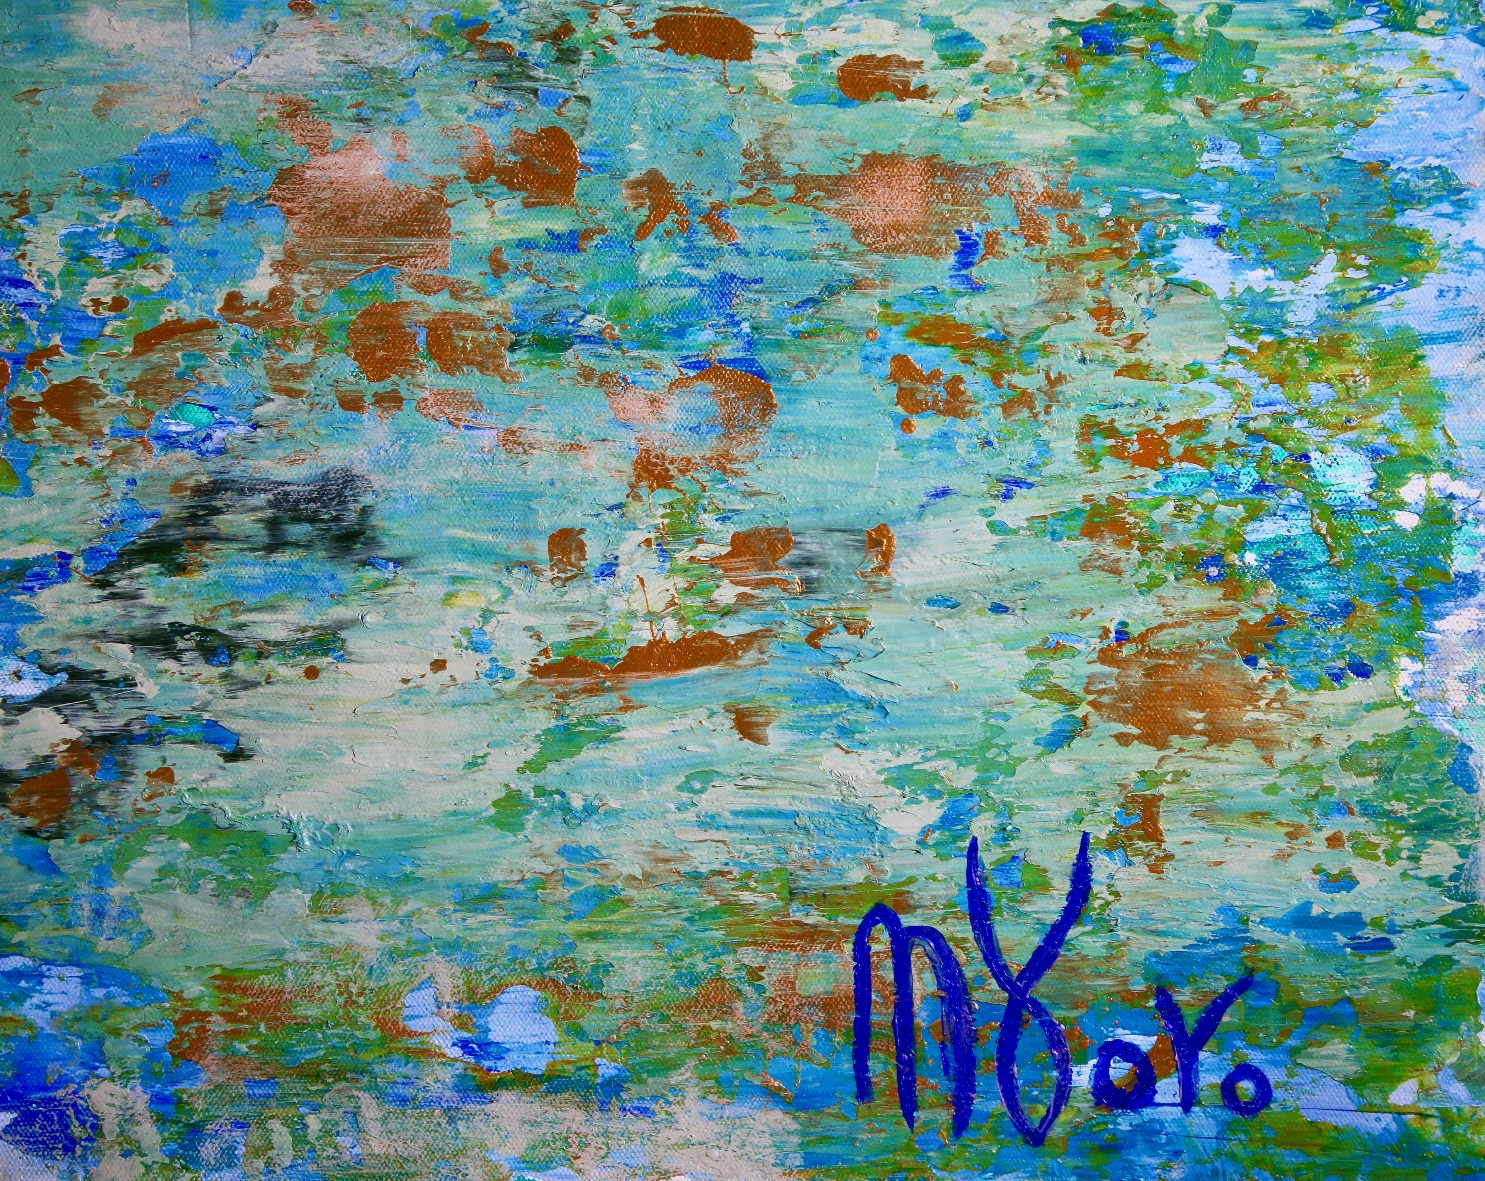 Close Up / Verdor Claro (A romance with green 2) (2018) Acrylic Acrylic painting by Nestor Toro